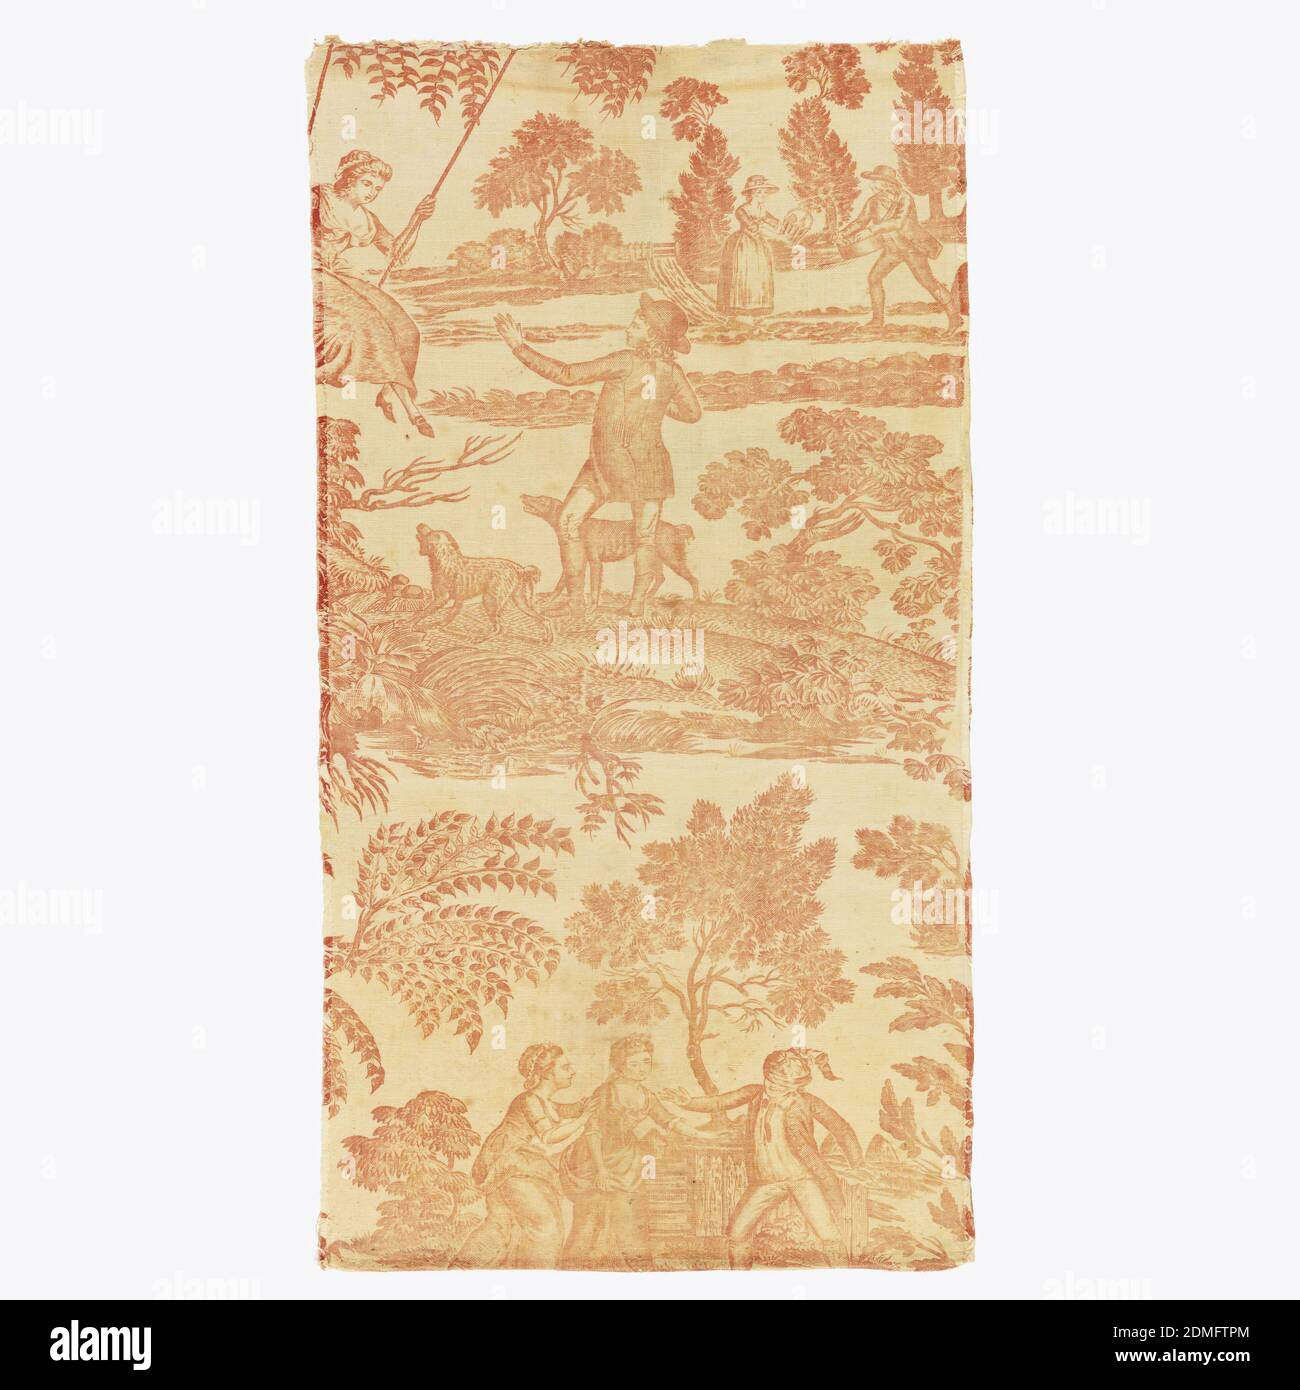 Fragment, Medium: cotton Technique: copperplate printed on plain weave, Textile fragment. Figures play 'blind man's buff' in a rustic setting with water fowl. Above, a man pushes a woman on a swing while dogs look on. Behind stands a man and woman with picnic basket. Each piece is composed of several pieces sewn together., England, late 18th century, printed, dyed & painted textiles, Fragment Banque D'Images